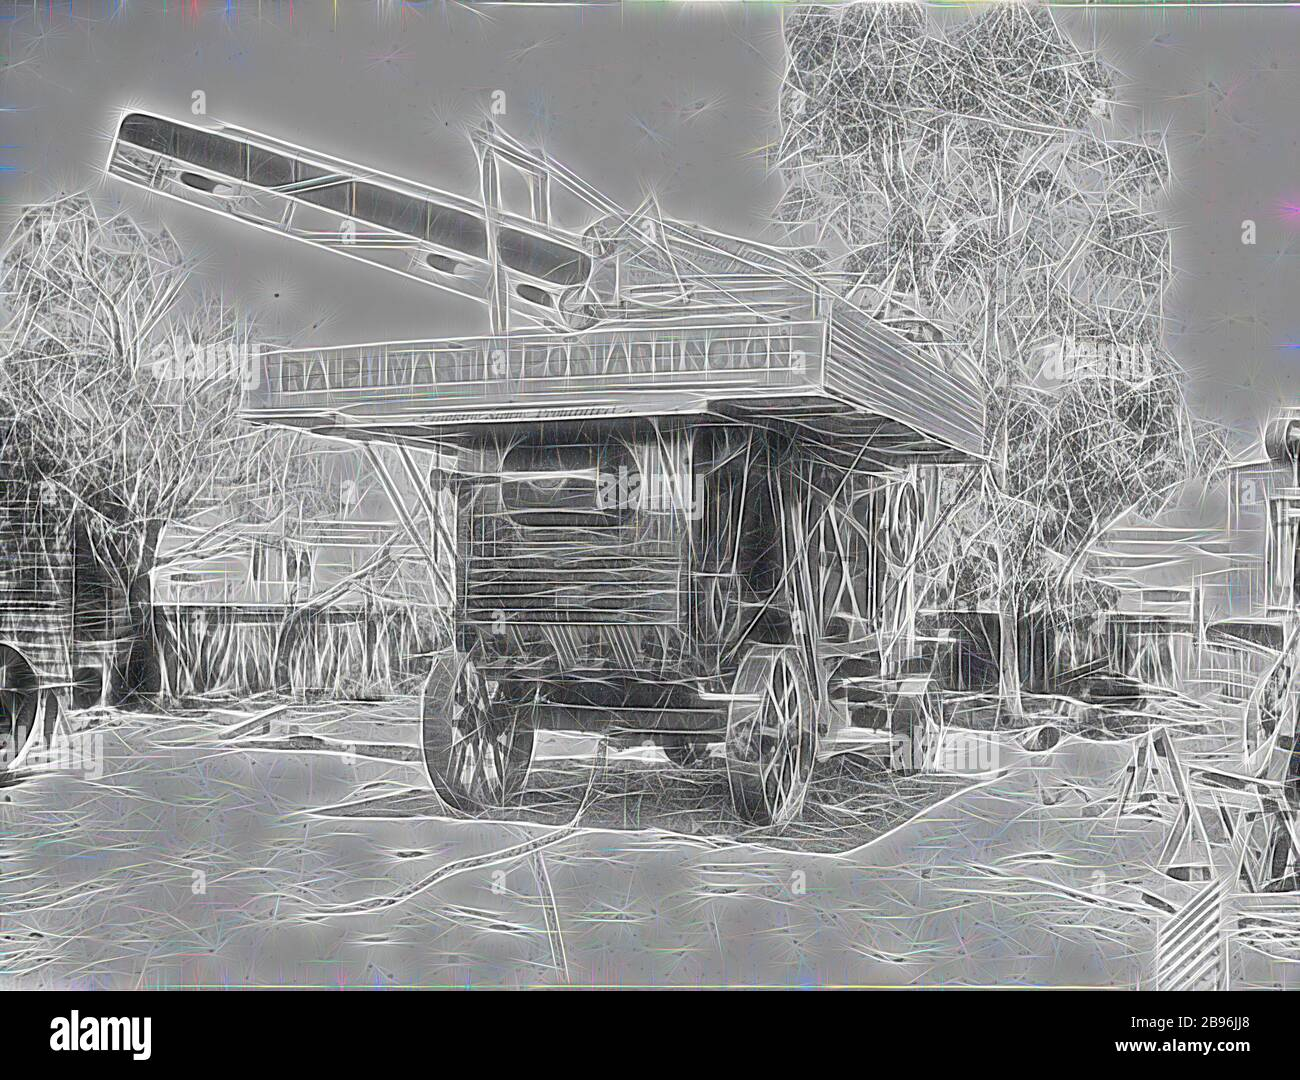 Negative - Threshing Machine, Ralph Martin, Portarlington, Victoria, circa 1915, Travelling threshing machine of contractor Ralph Martin, Portarlington, Victoria. The threshing machine is fitted with a patent sheaf elevator and feeder labelled P.W. Sides' Patent, No.19746/10. No.3, Sawmill, ???, Geelong, Reimagined by Gibon, design of warm cheerful glowing of brightness and light rays radiance. Classic art reinvented with a modern twist. Photography inspired by futurism, embracing dynamic energy of modern technology, movement, speed and revolutionize culture. Stock Photo